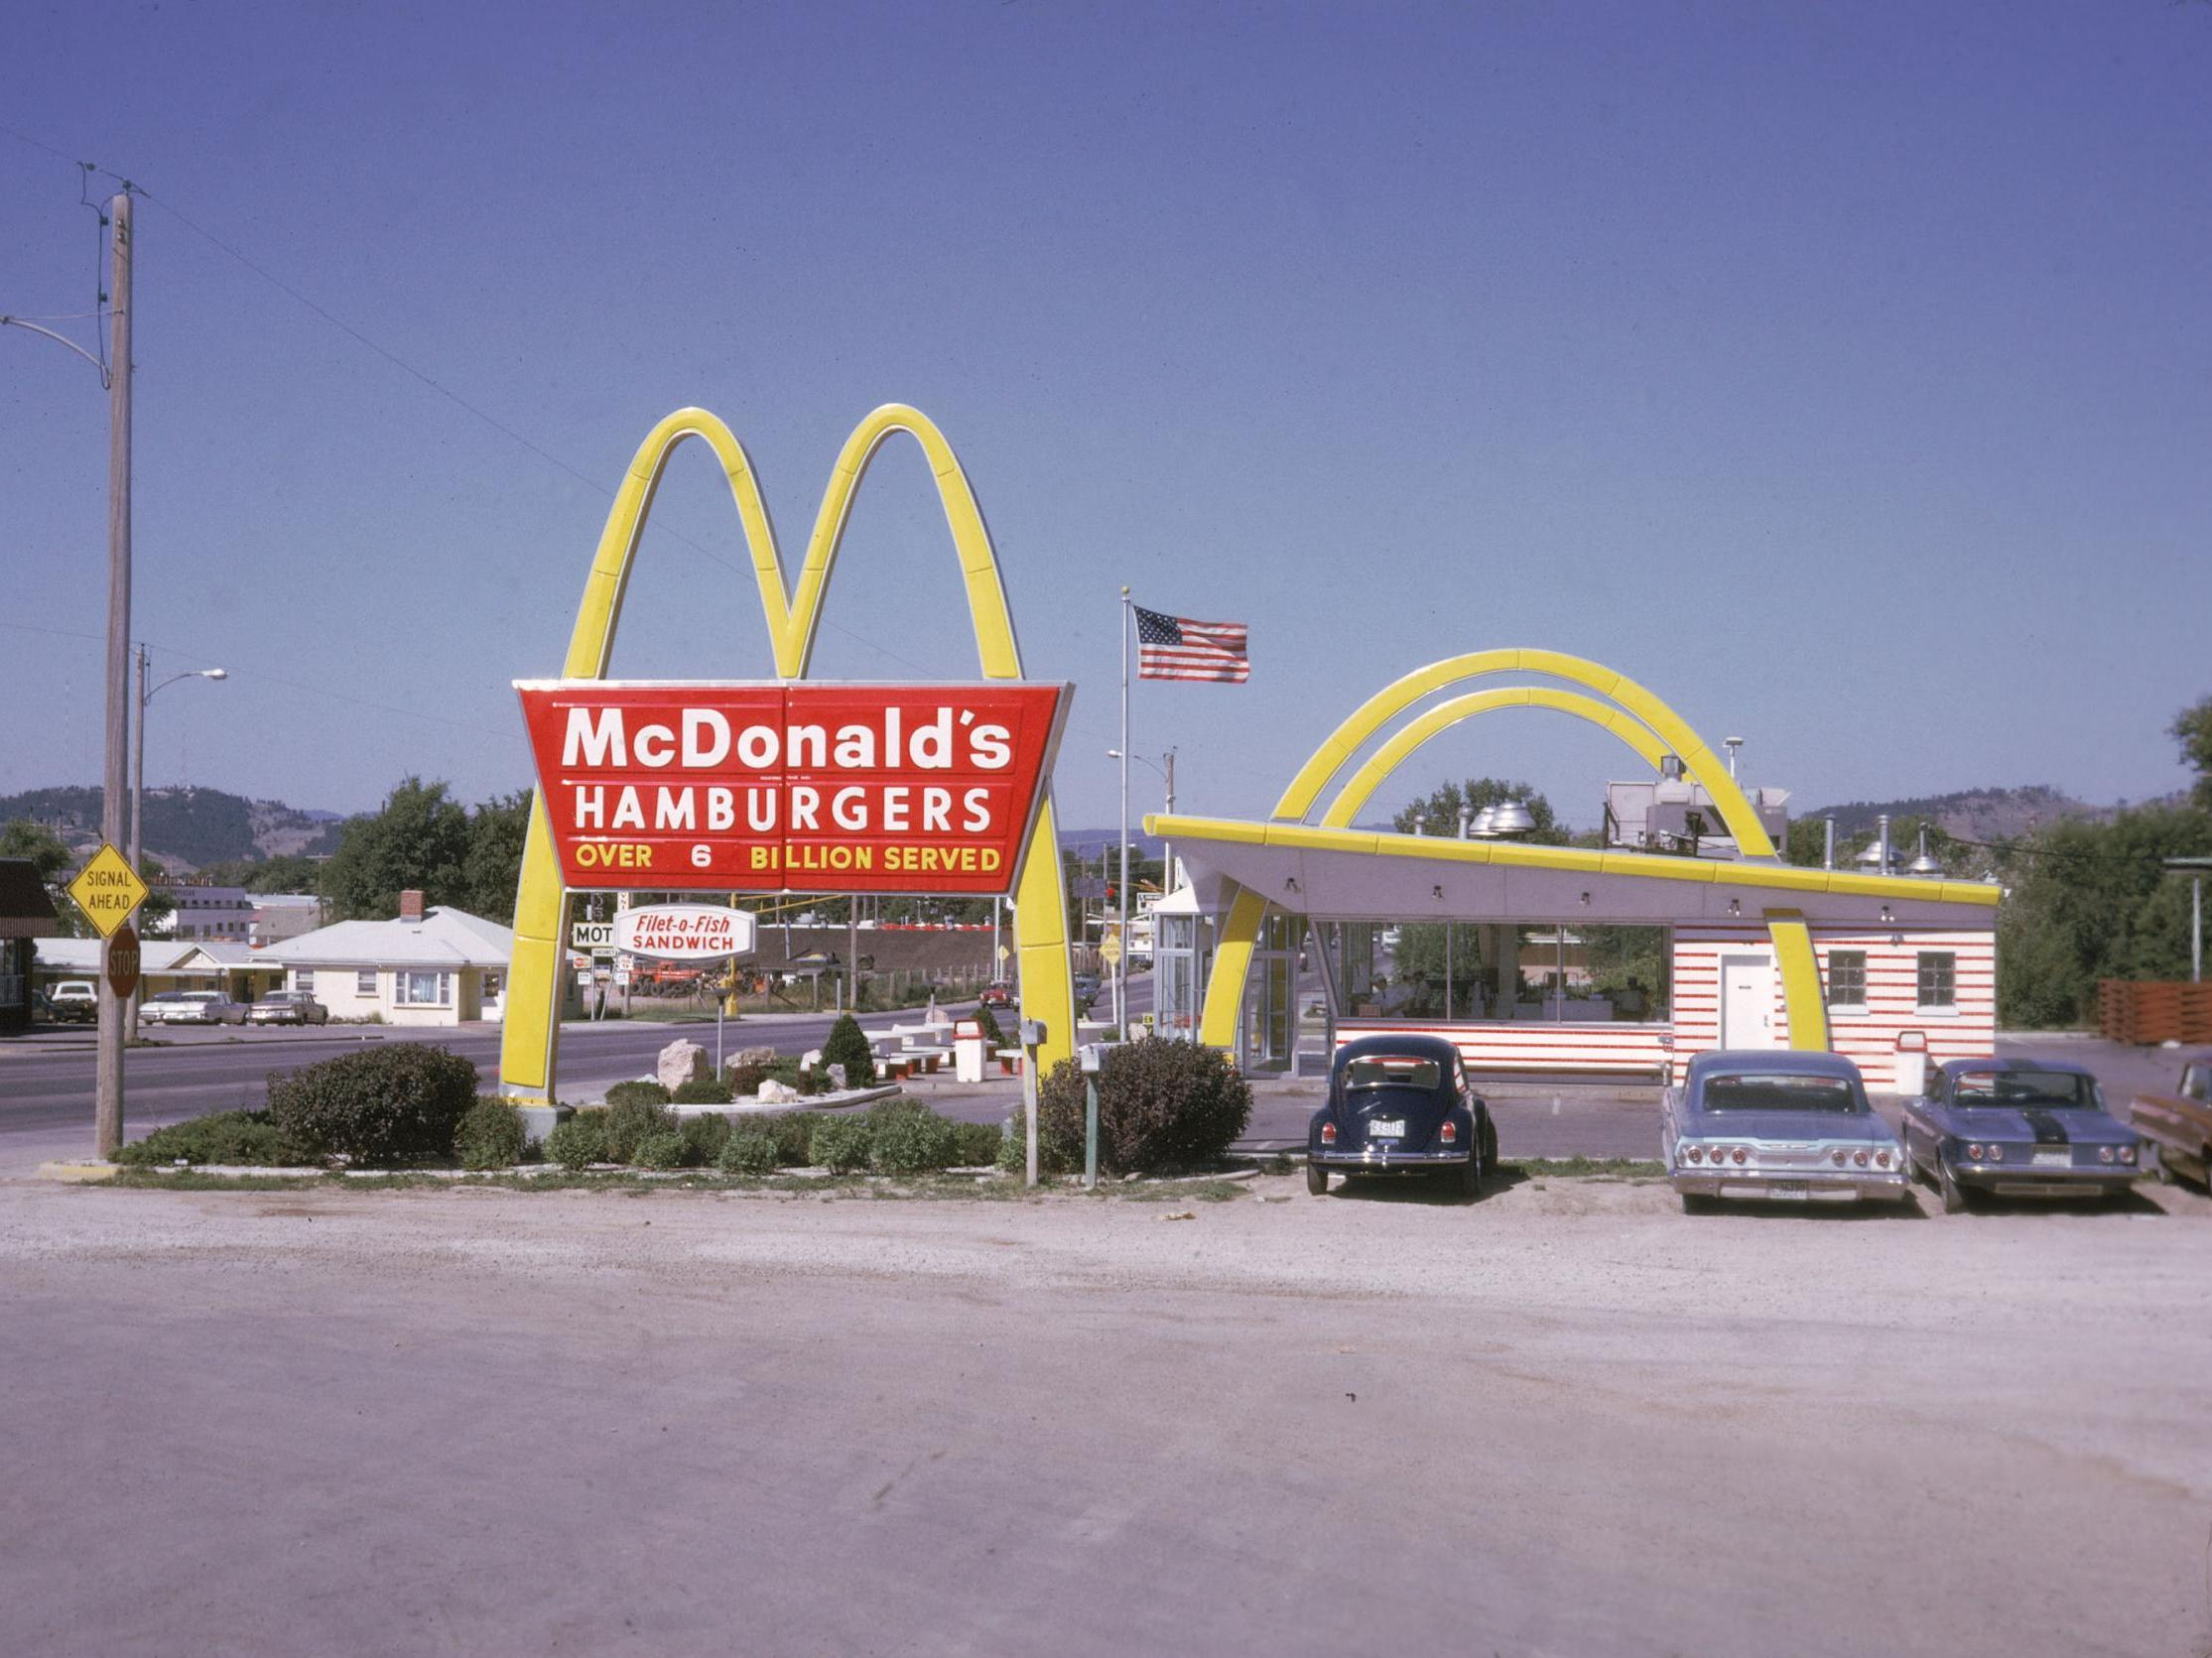 McDonald's 80th anniversary: How the restaurant went from a family-run franchise to a fast food giant